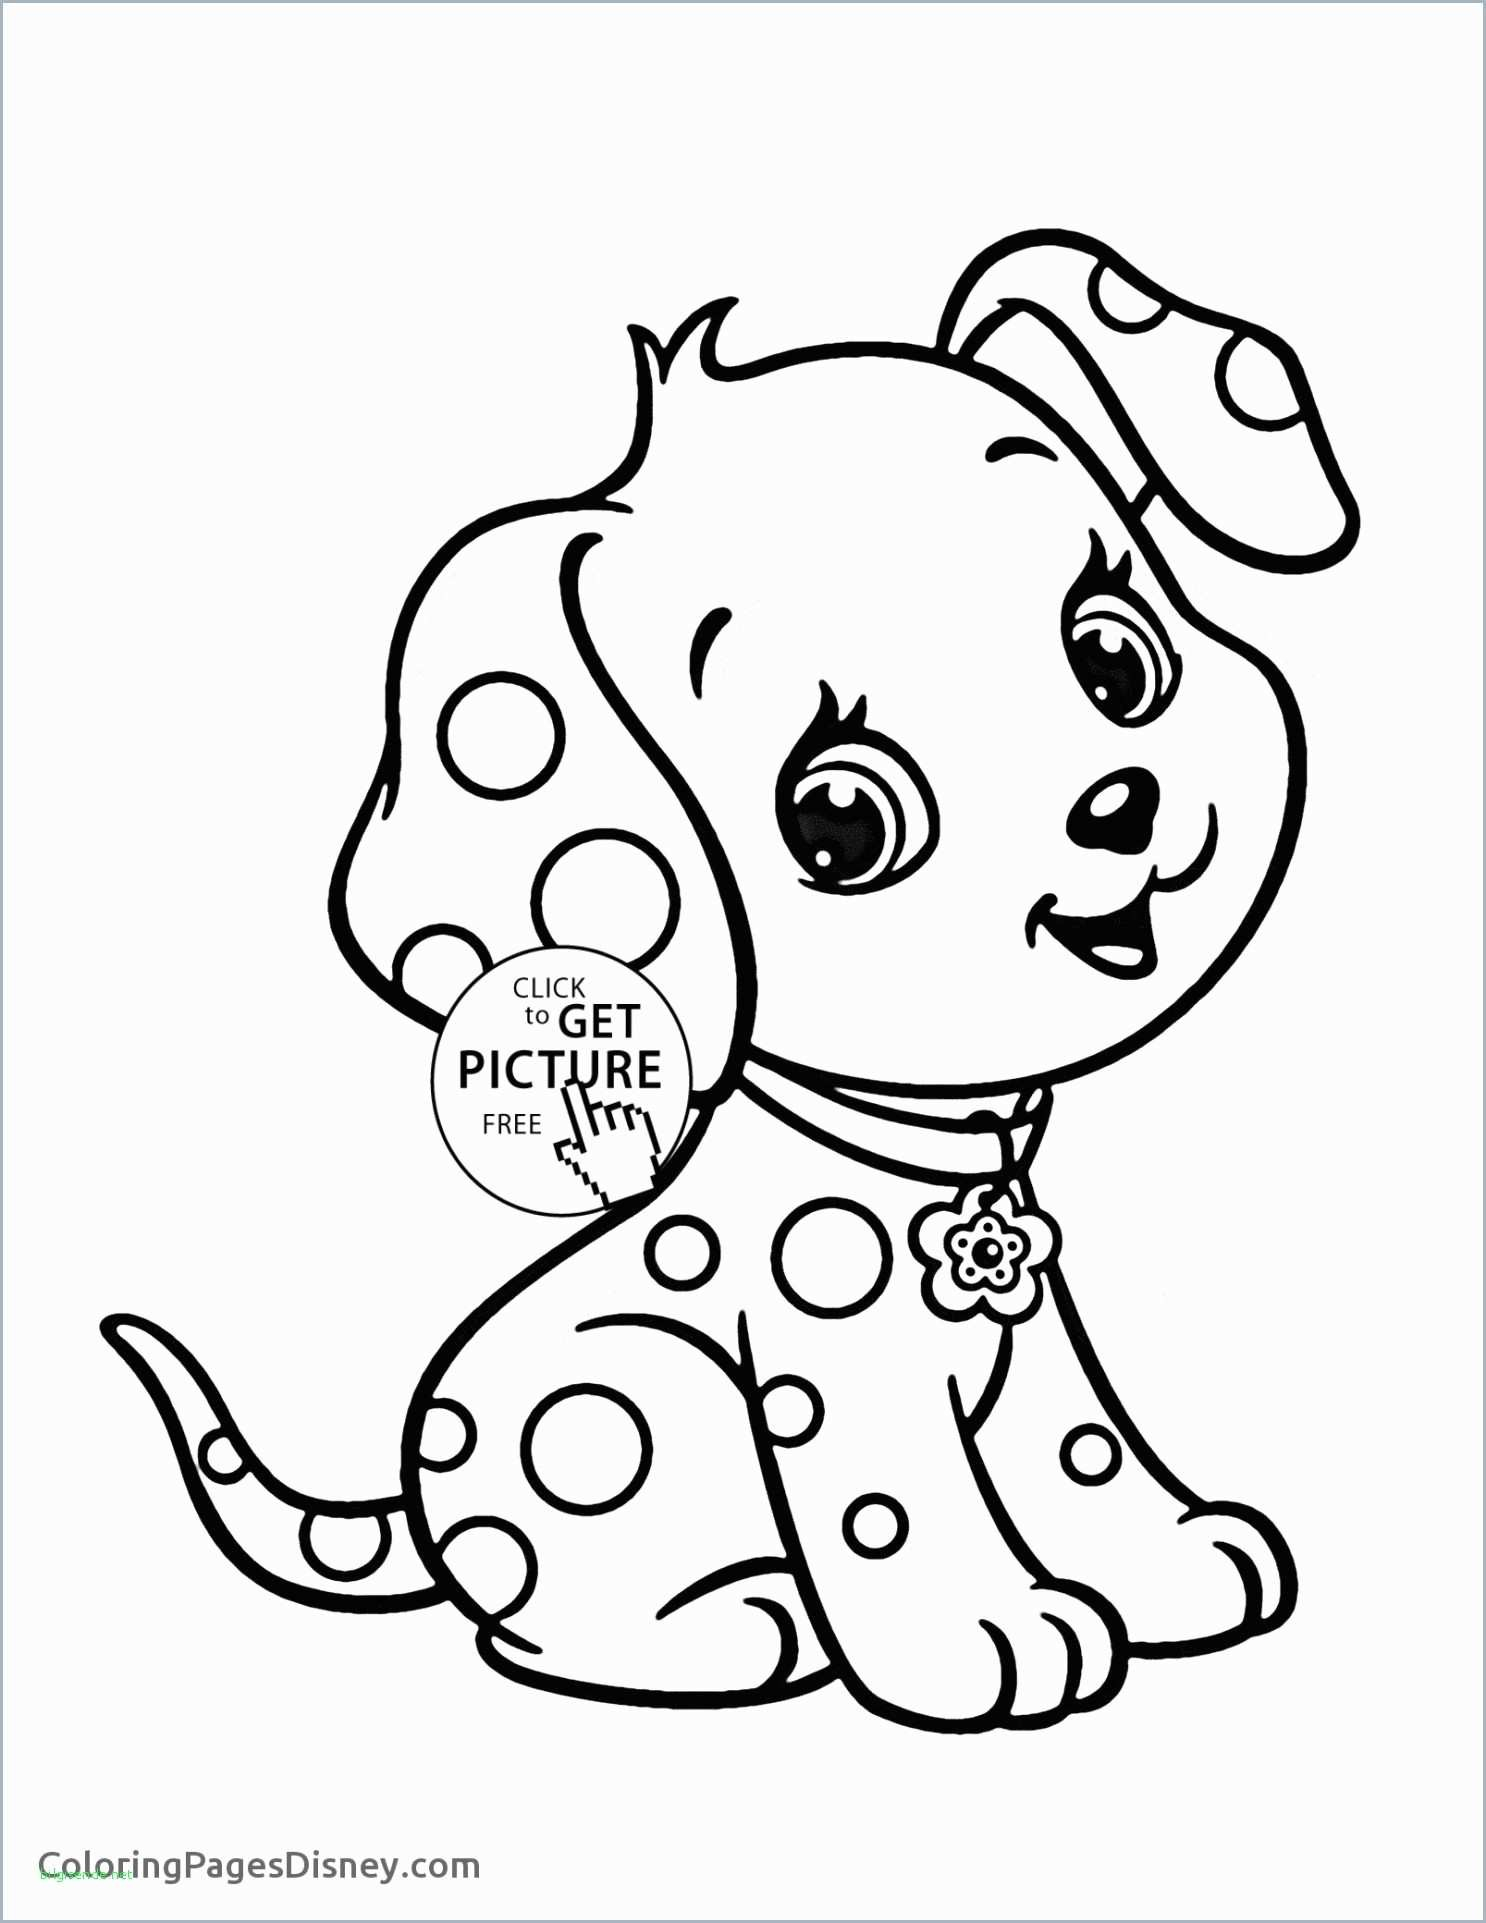 Disney Characters Printable Coloring Pages